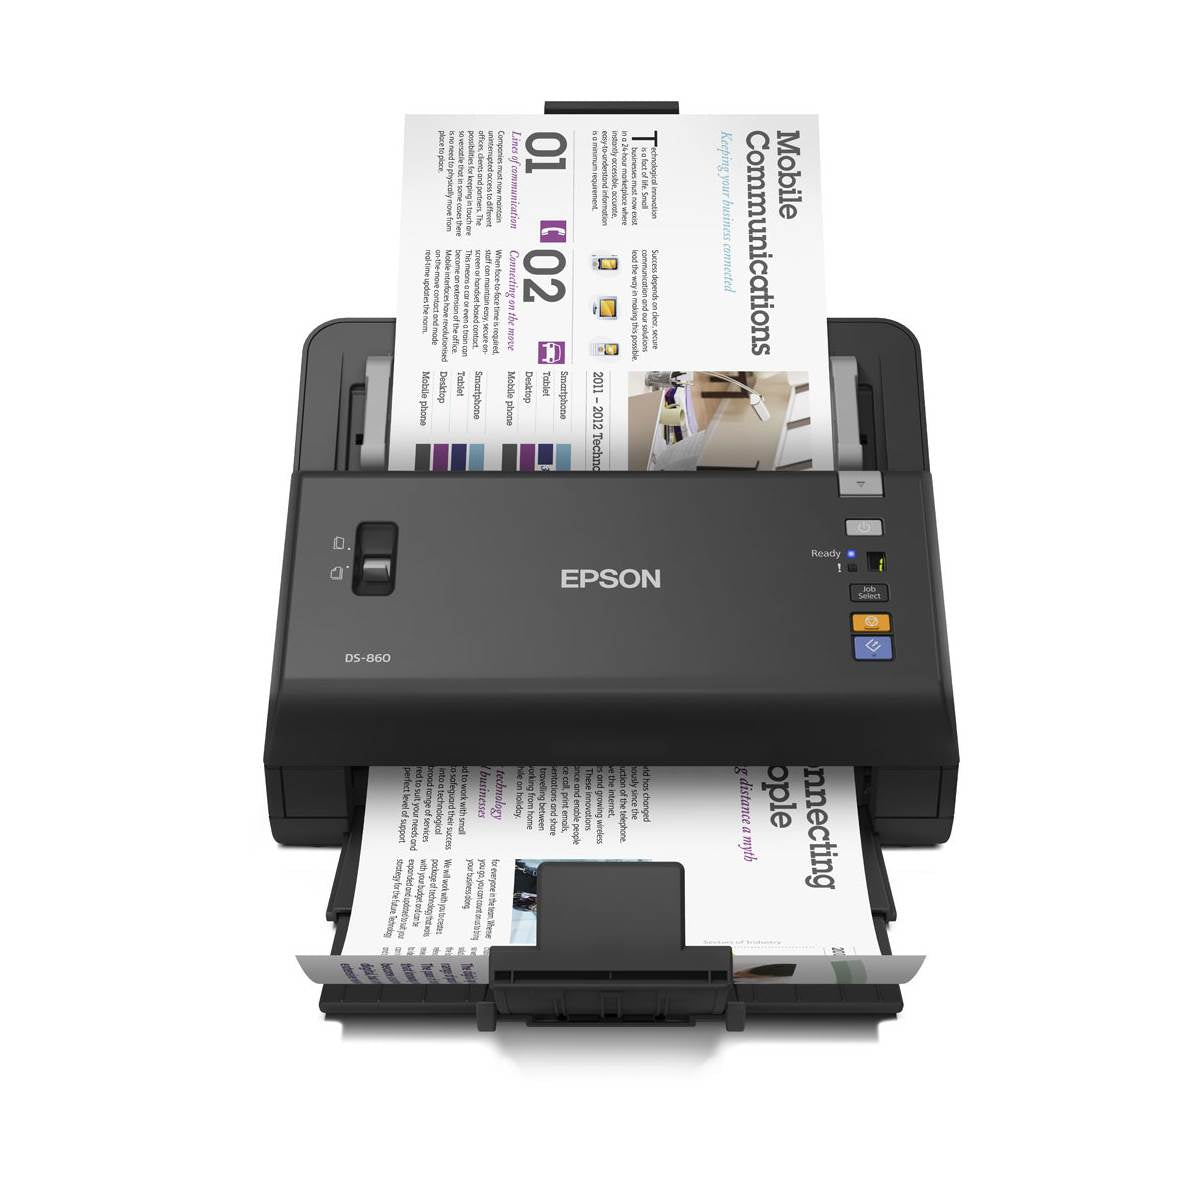 Epson Printer Will Not Scan To Computer Wirelessly